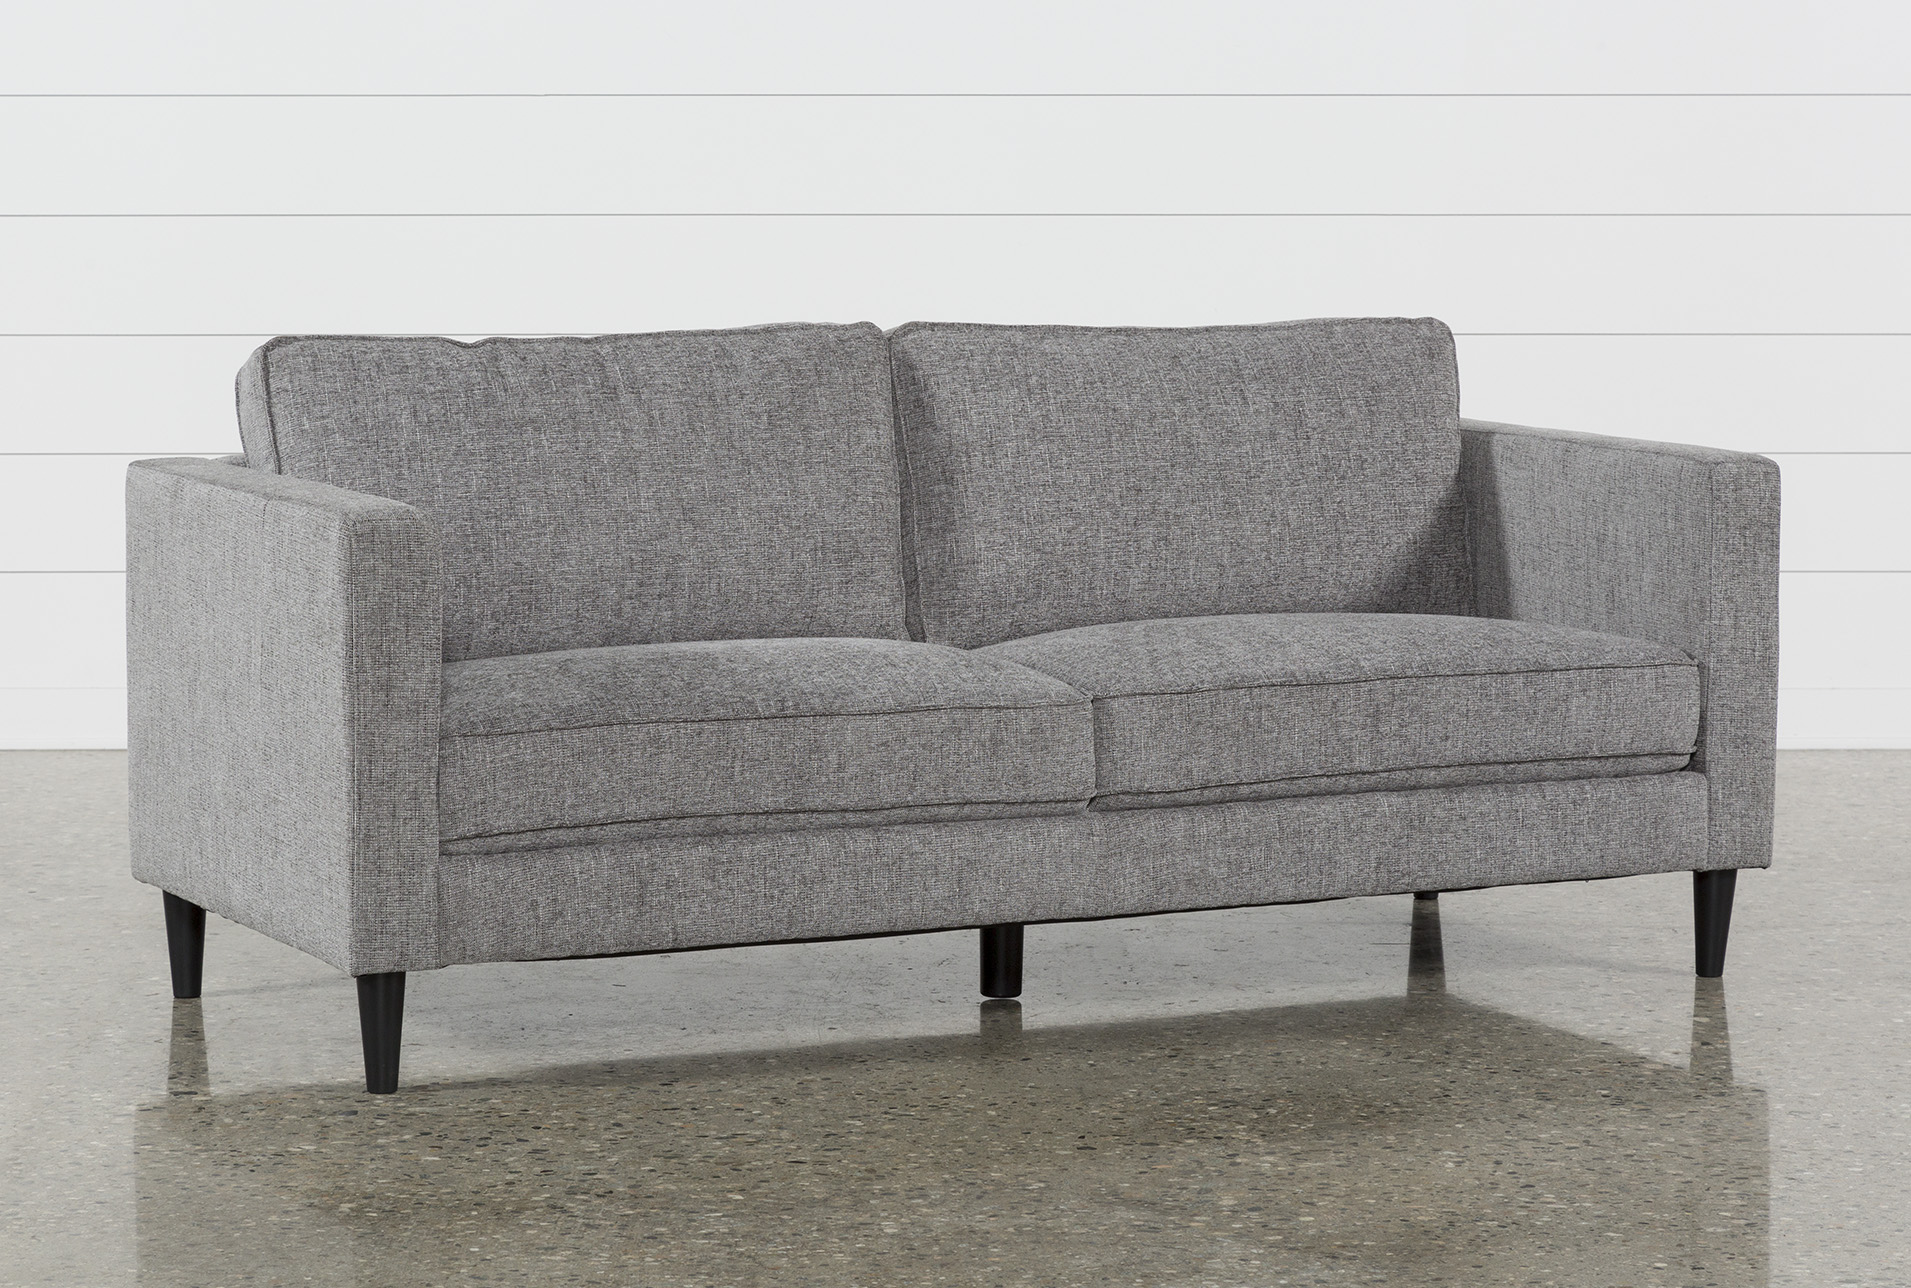 gray couch cosmos gray sofa (number: 1) has been successfully added to your shopping cart.  KSYTKGO